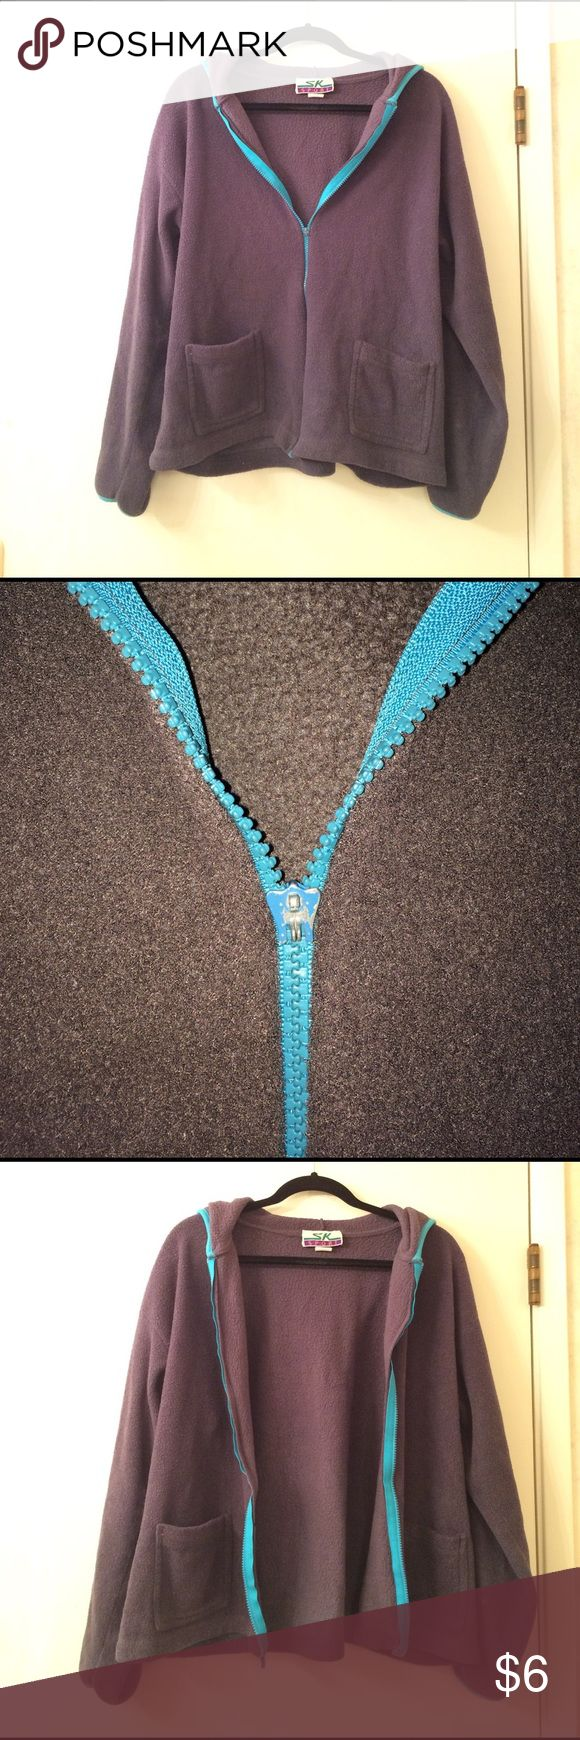 Vintage 90s Warm Fuzzy Zip Up Hooded Sweater Dark grey zip up hoodie with 2 front pockets and a teal blue zipper. There is also teal blue lining the hood. The tag with the size, material, and care instructions is completely faded. Fits like a large or extra large. The zipper pull broke off but the zipper still works! A very comfy cozy sweatshirt! SK Sport Tops Sweatshirts & Hoodies